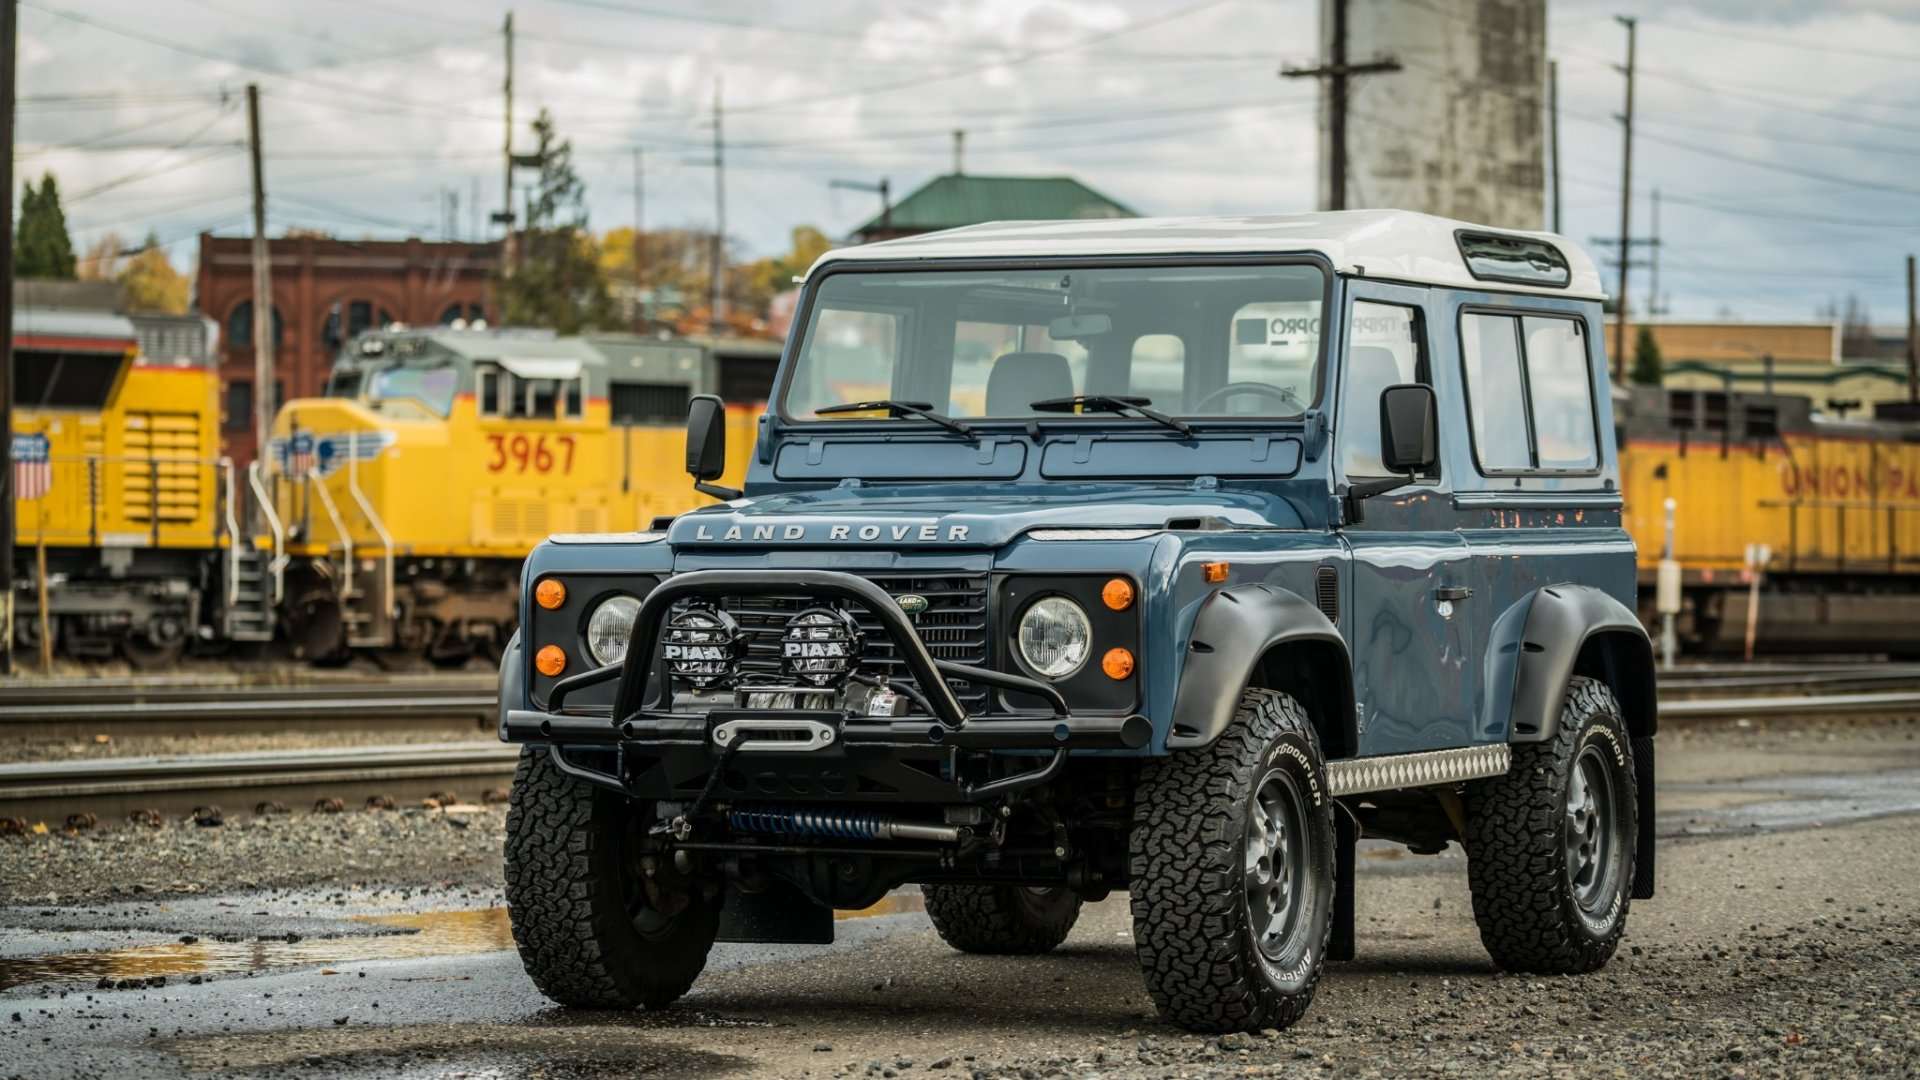 Pojazdy - Land Rover Defender  Land Rover Defender 90 Off-Road Blue Car Old Car Samochód Tapeta